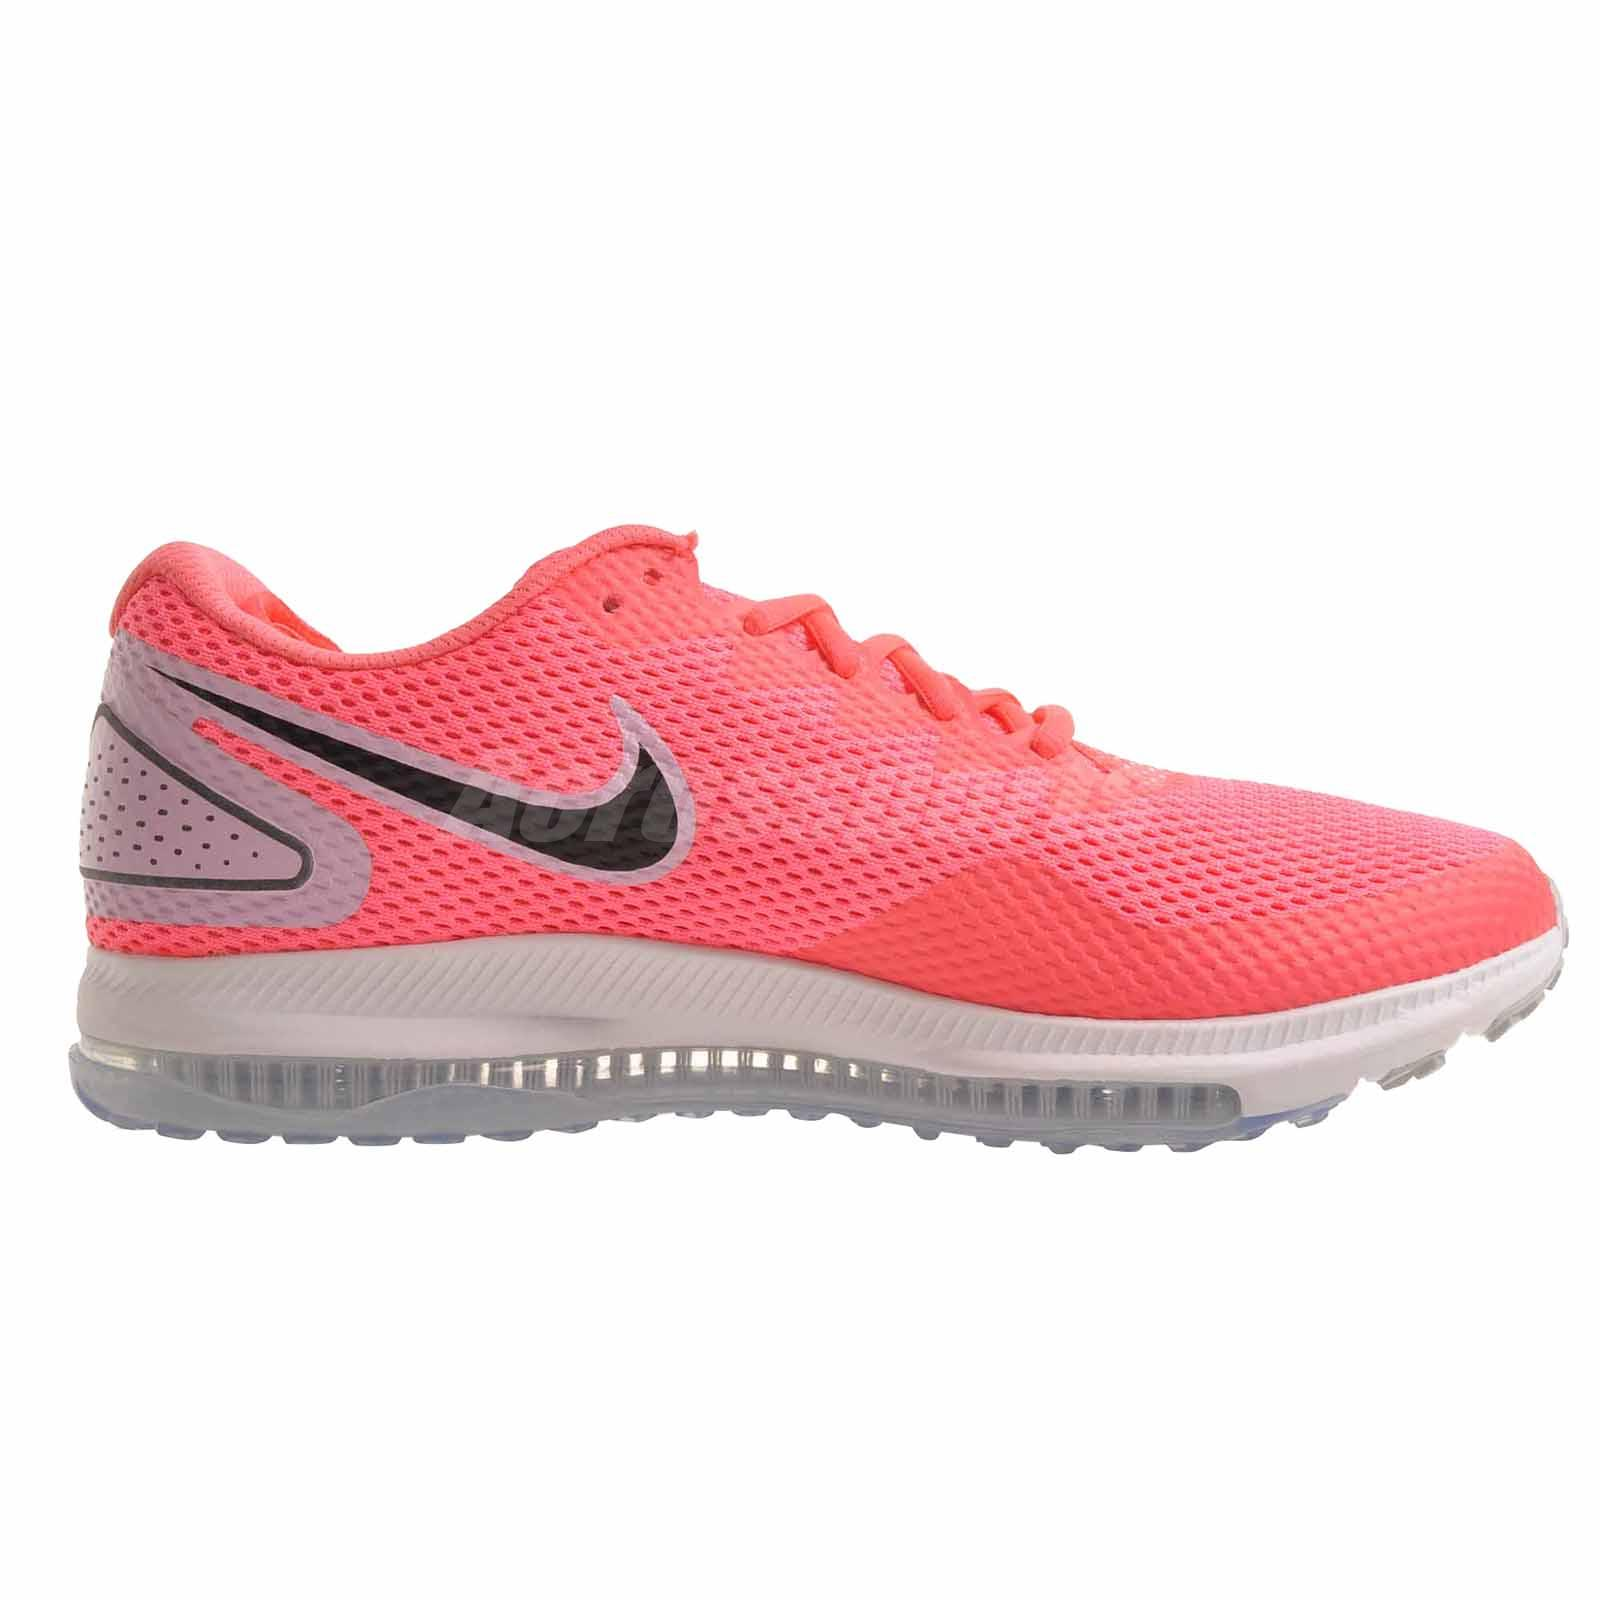 10ad4748bcf3 Nike Wmns Zoom All Out Low 2 Running Womens Shoes Hot Punch NWOB ...